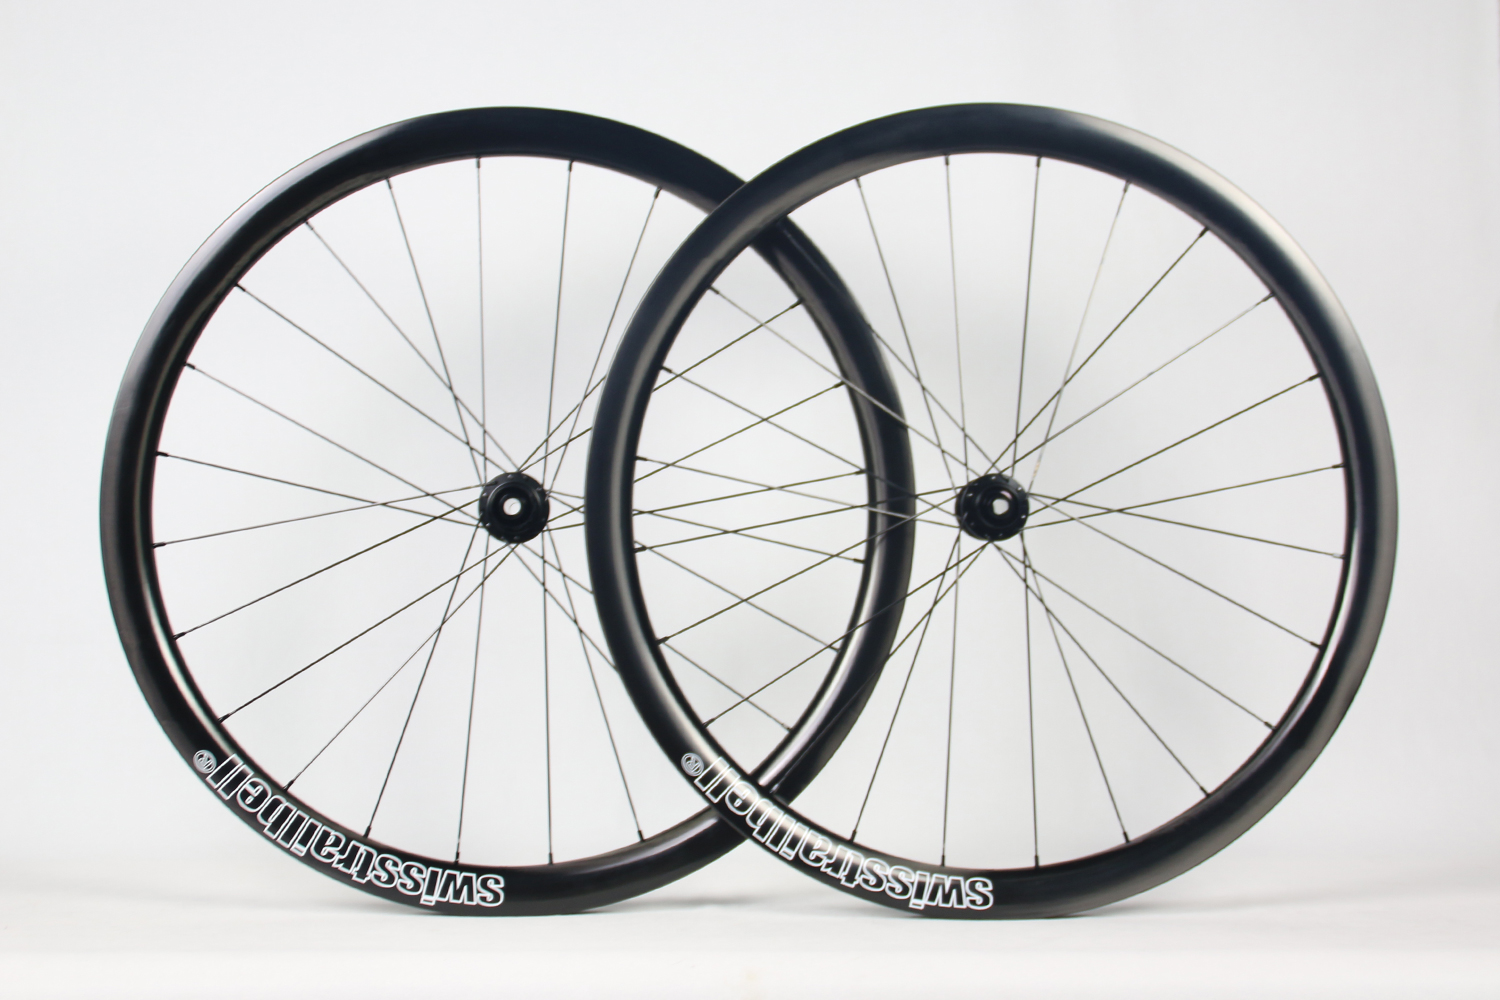 wr38-paintless-ud-carbon-wheels-with-custom-rim-decals